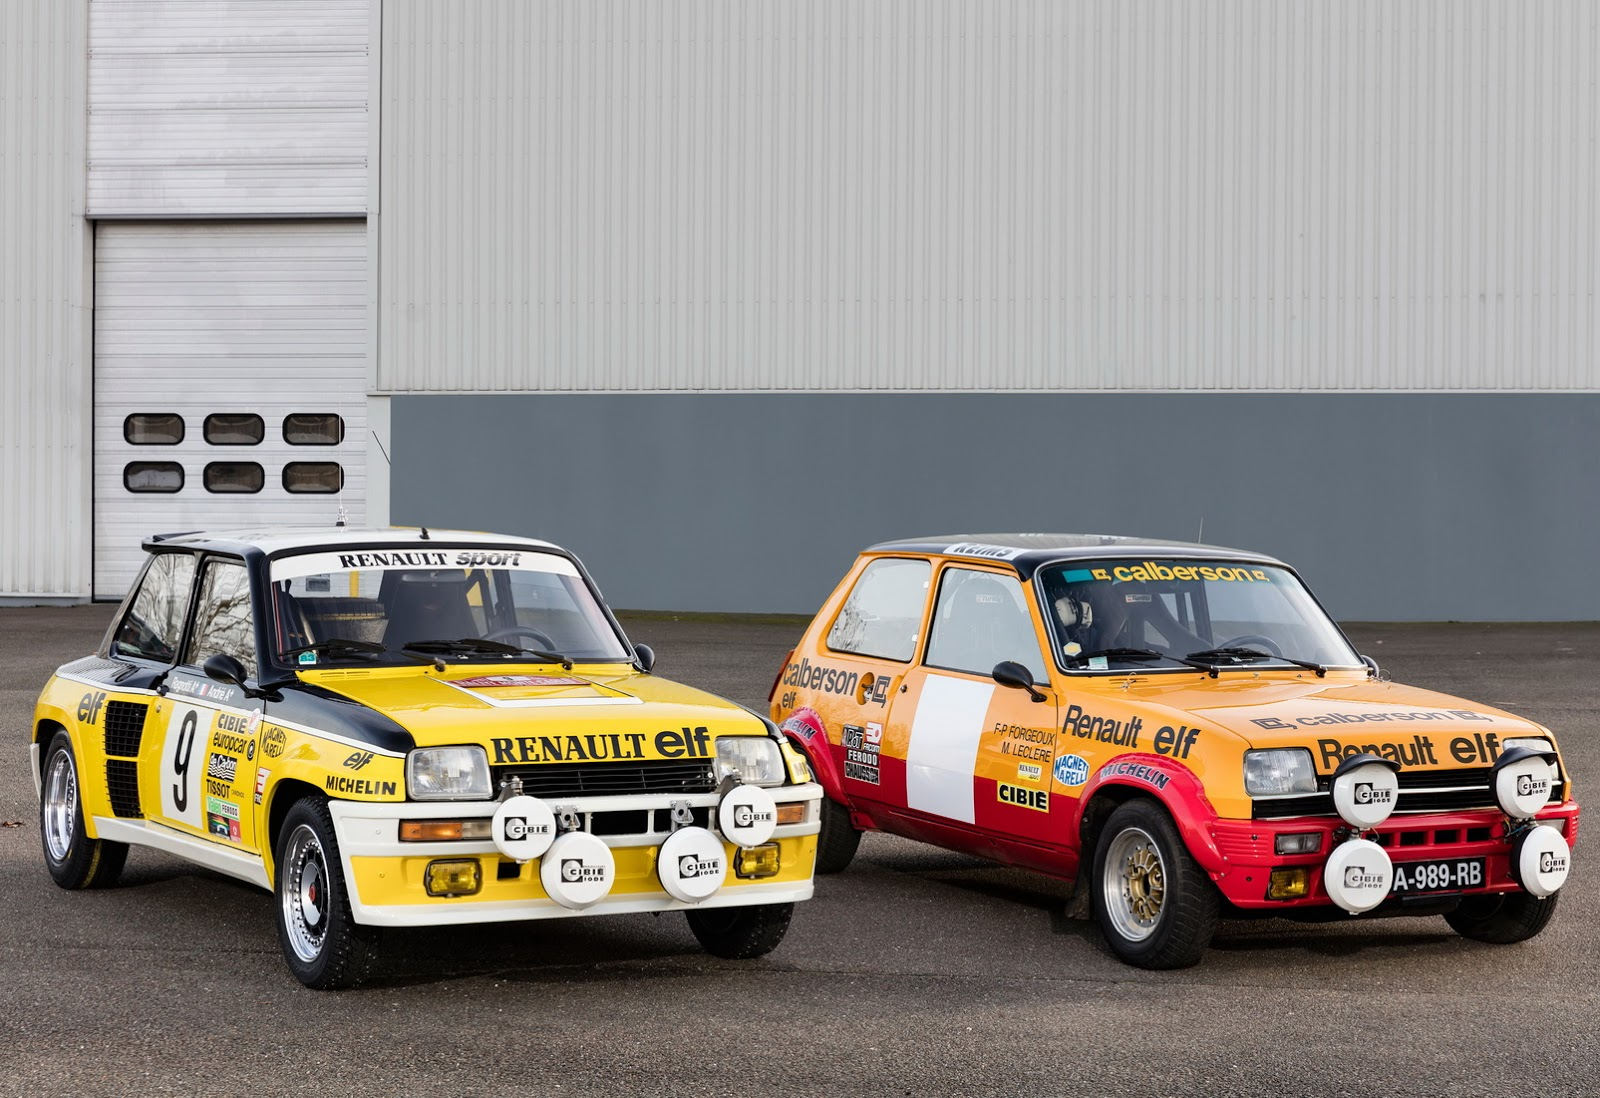 Renault classic photo - 8